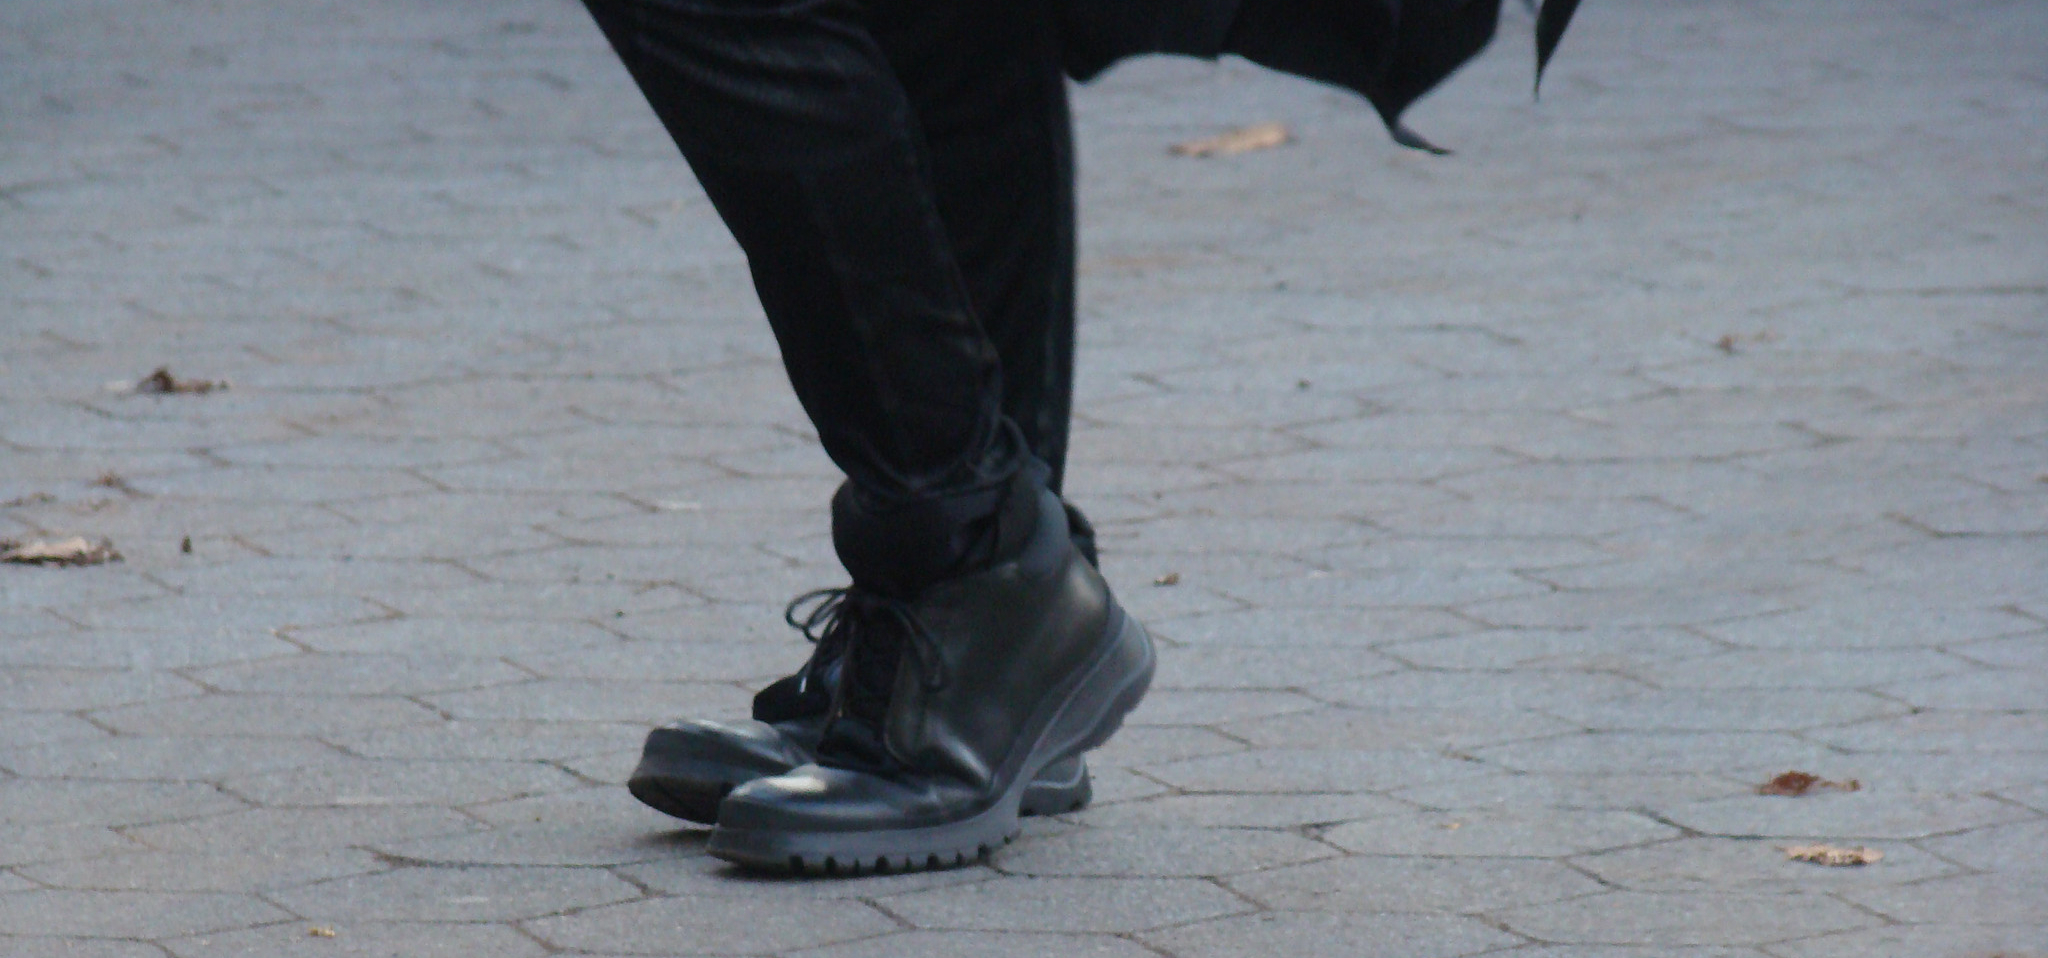 close up of legs and feet of person in Batman costume doing the Moon walk dance.